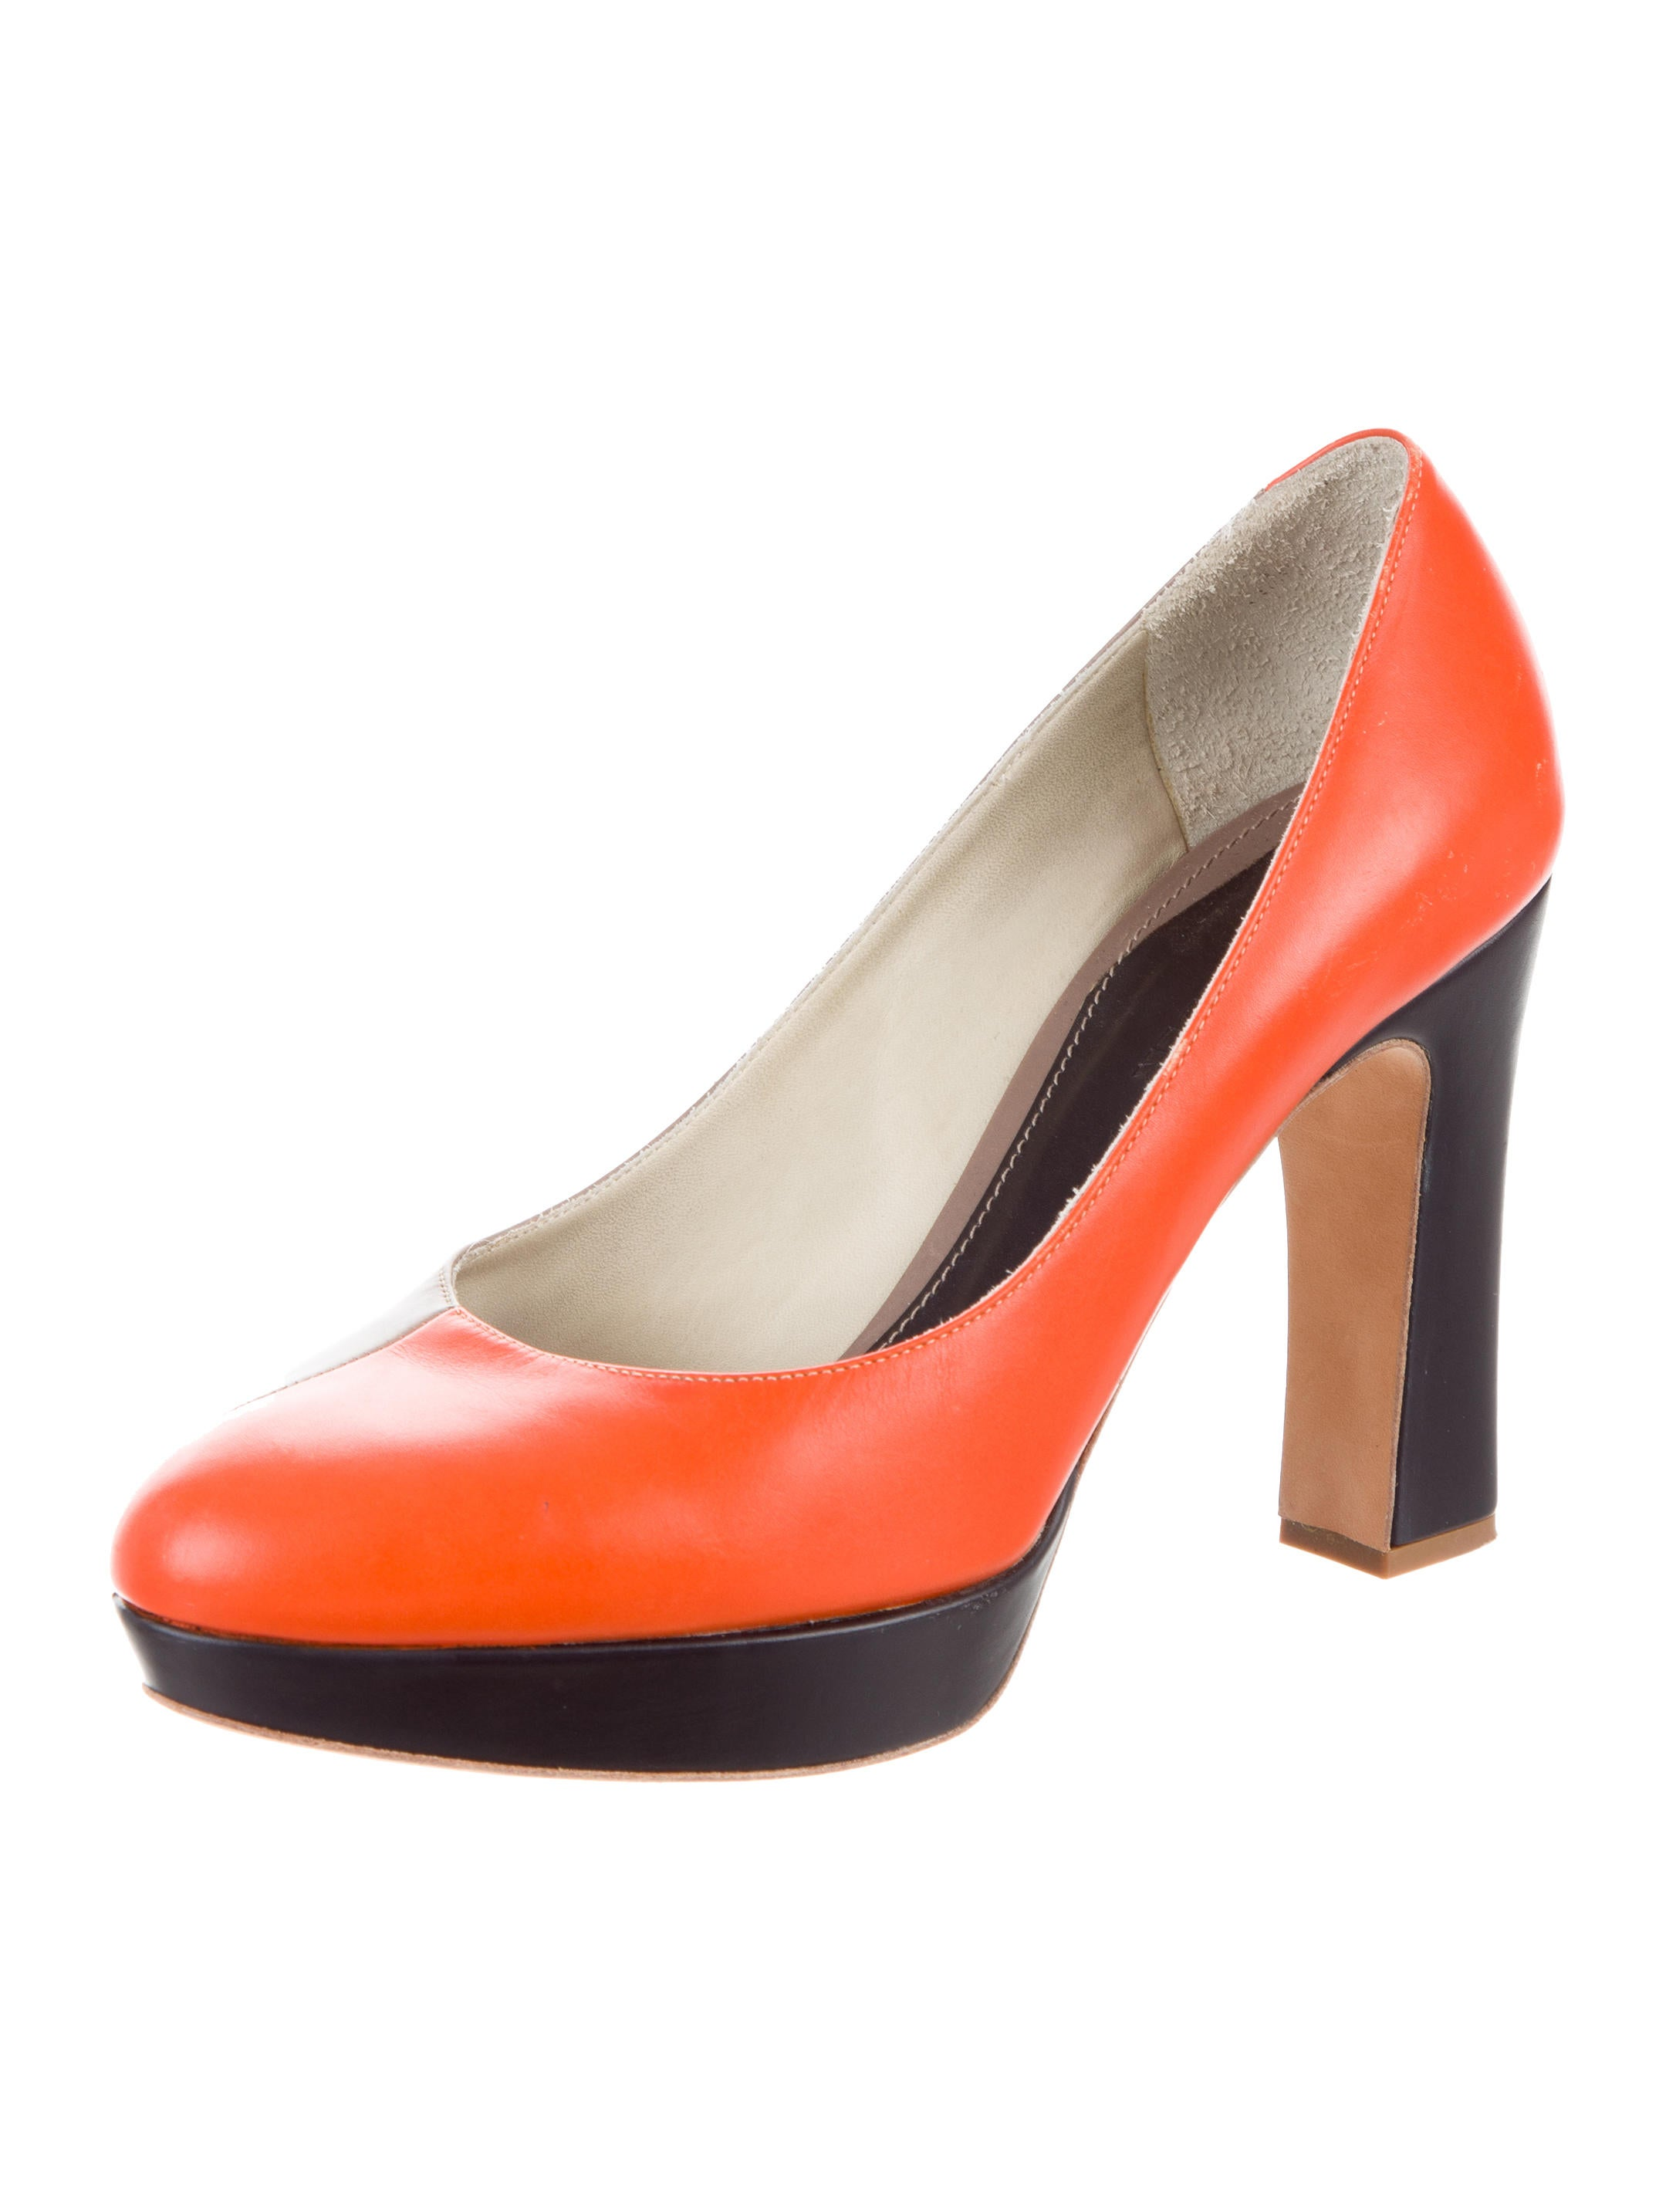 Jil Sander Bicolor Platform Pumps outlet pictures cheap outlet locations genuine online order sale online cheap pay with paypal 7Ty3NI3